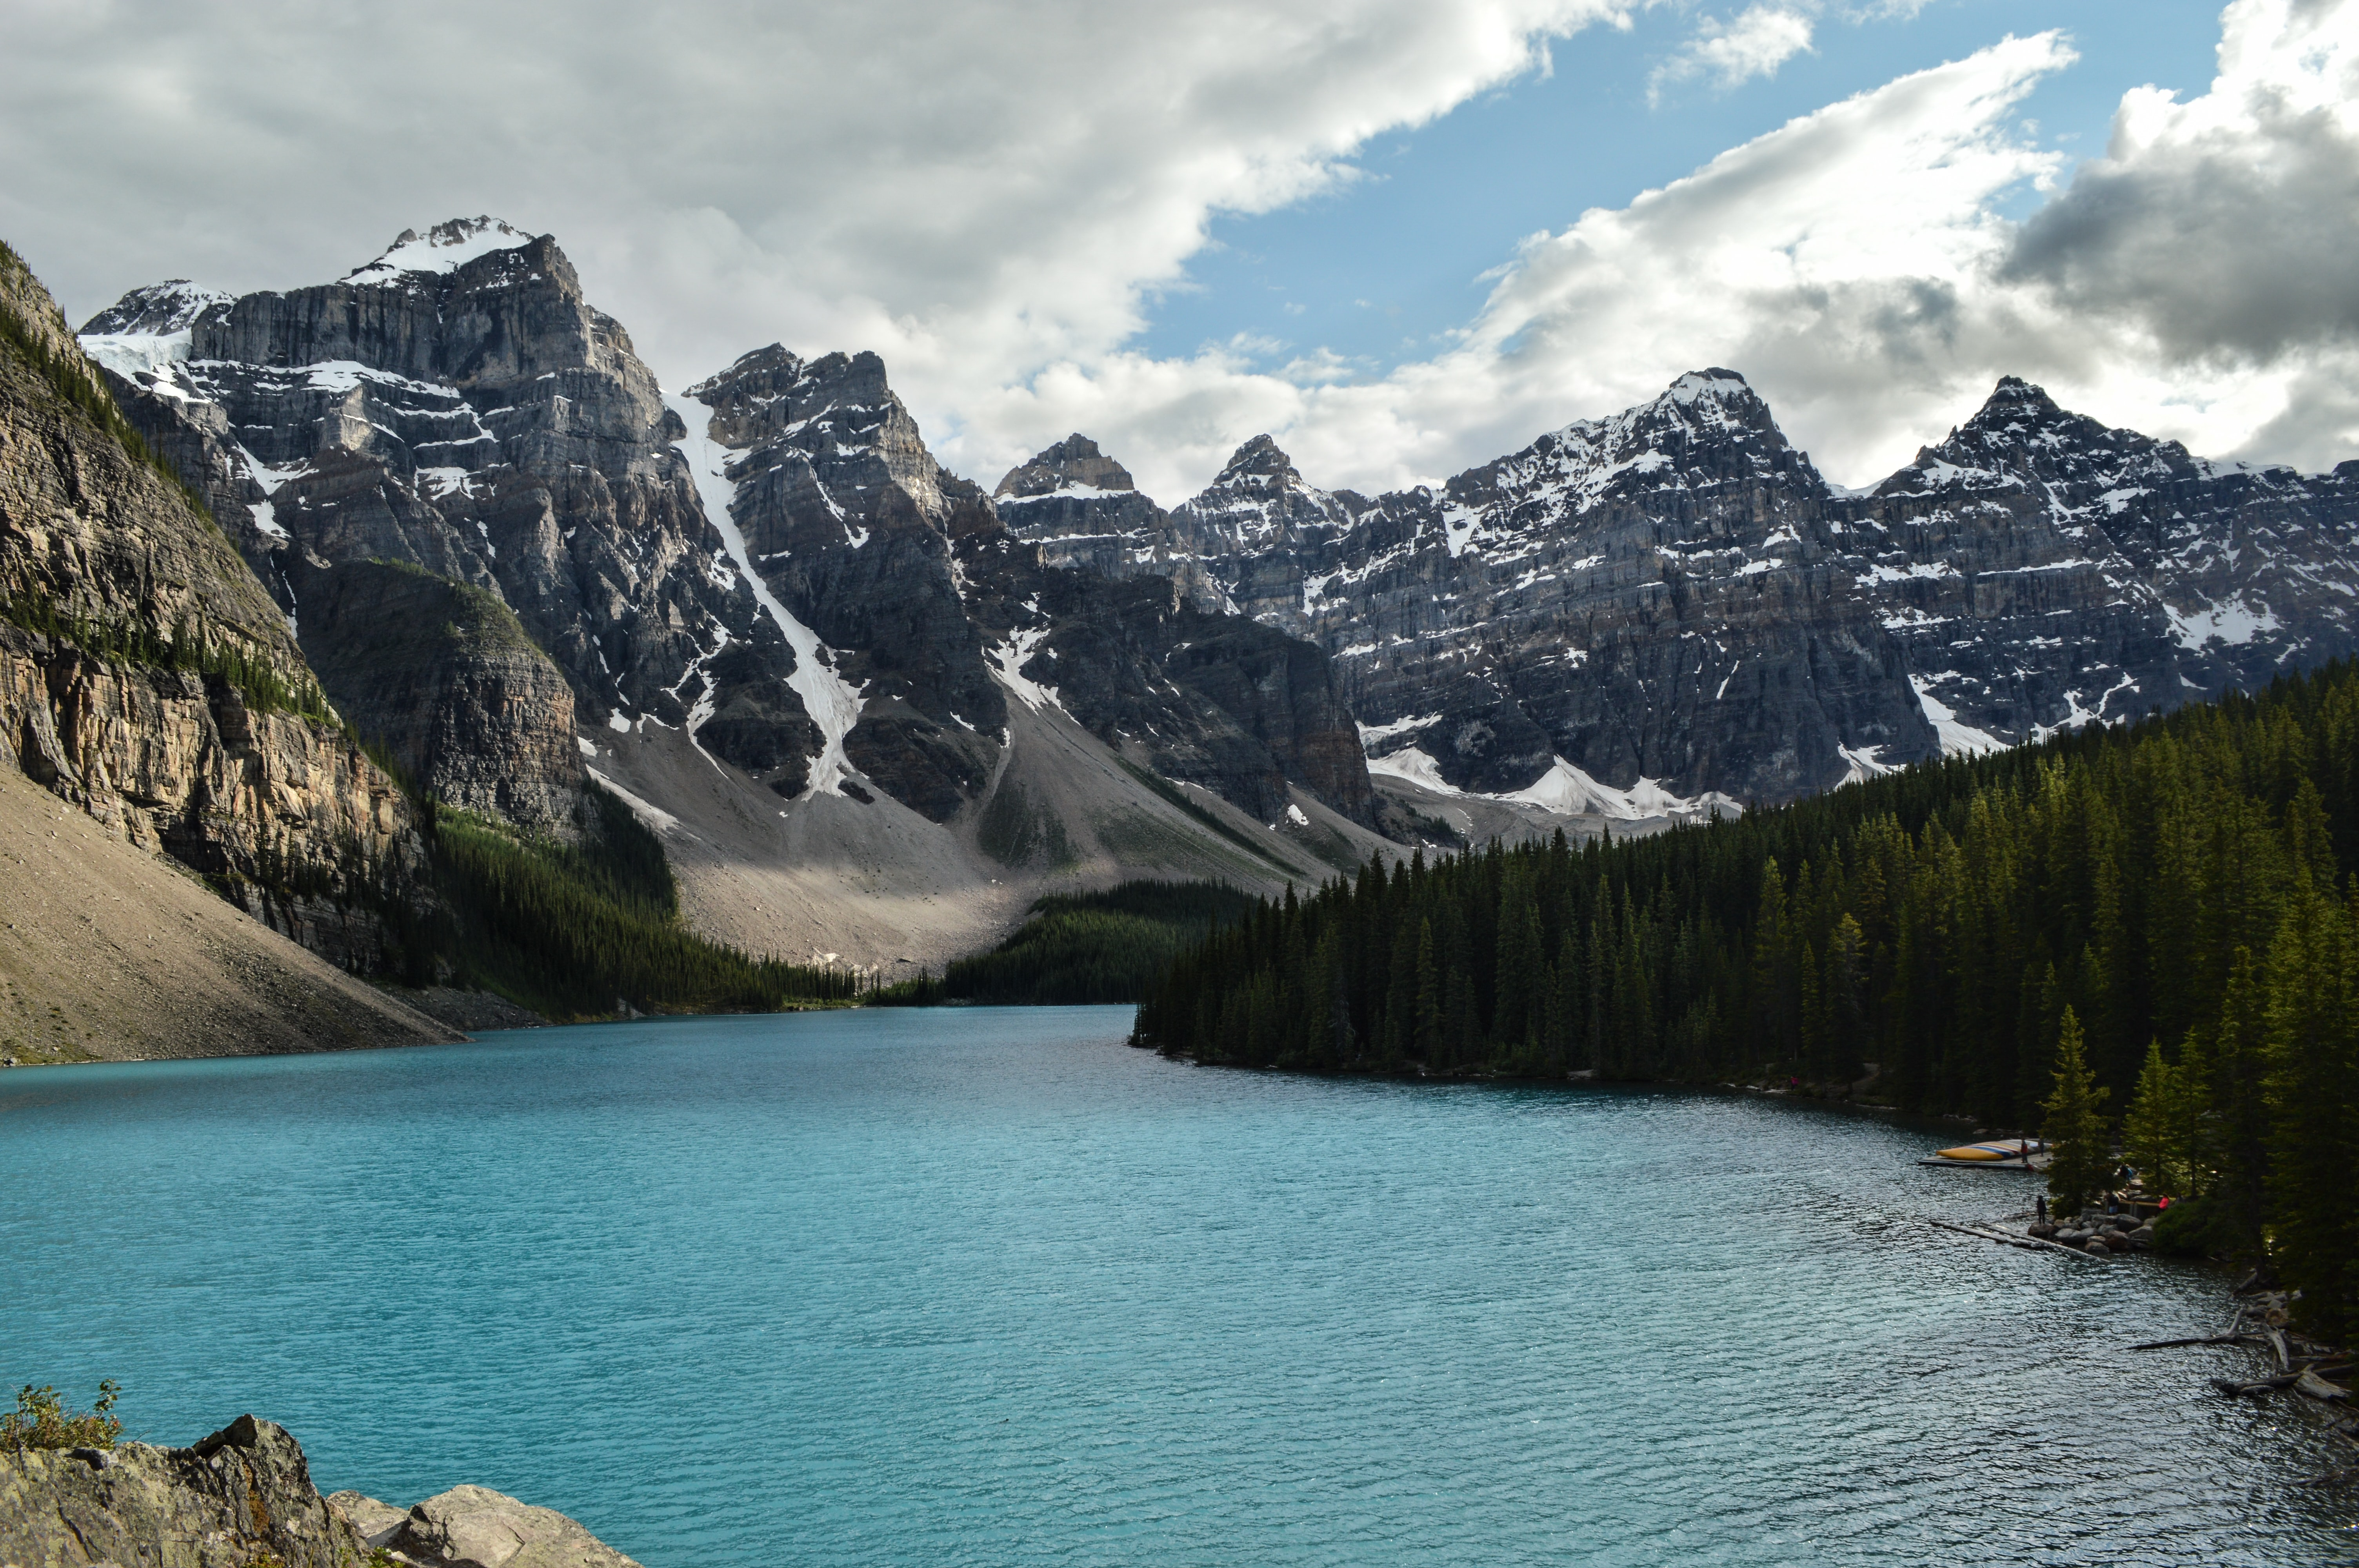 A lake stretching along snowy mountains in Banff